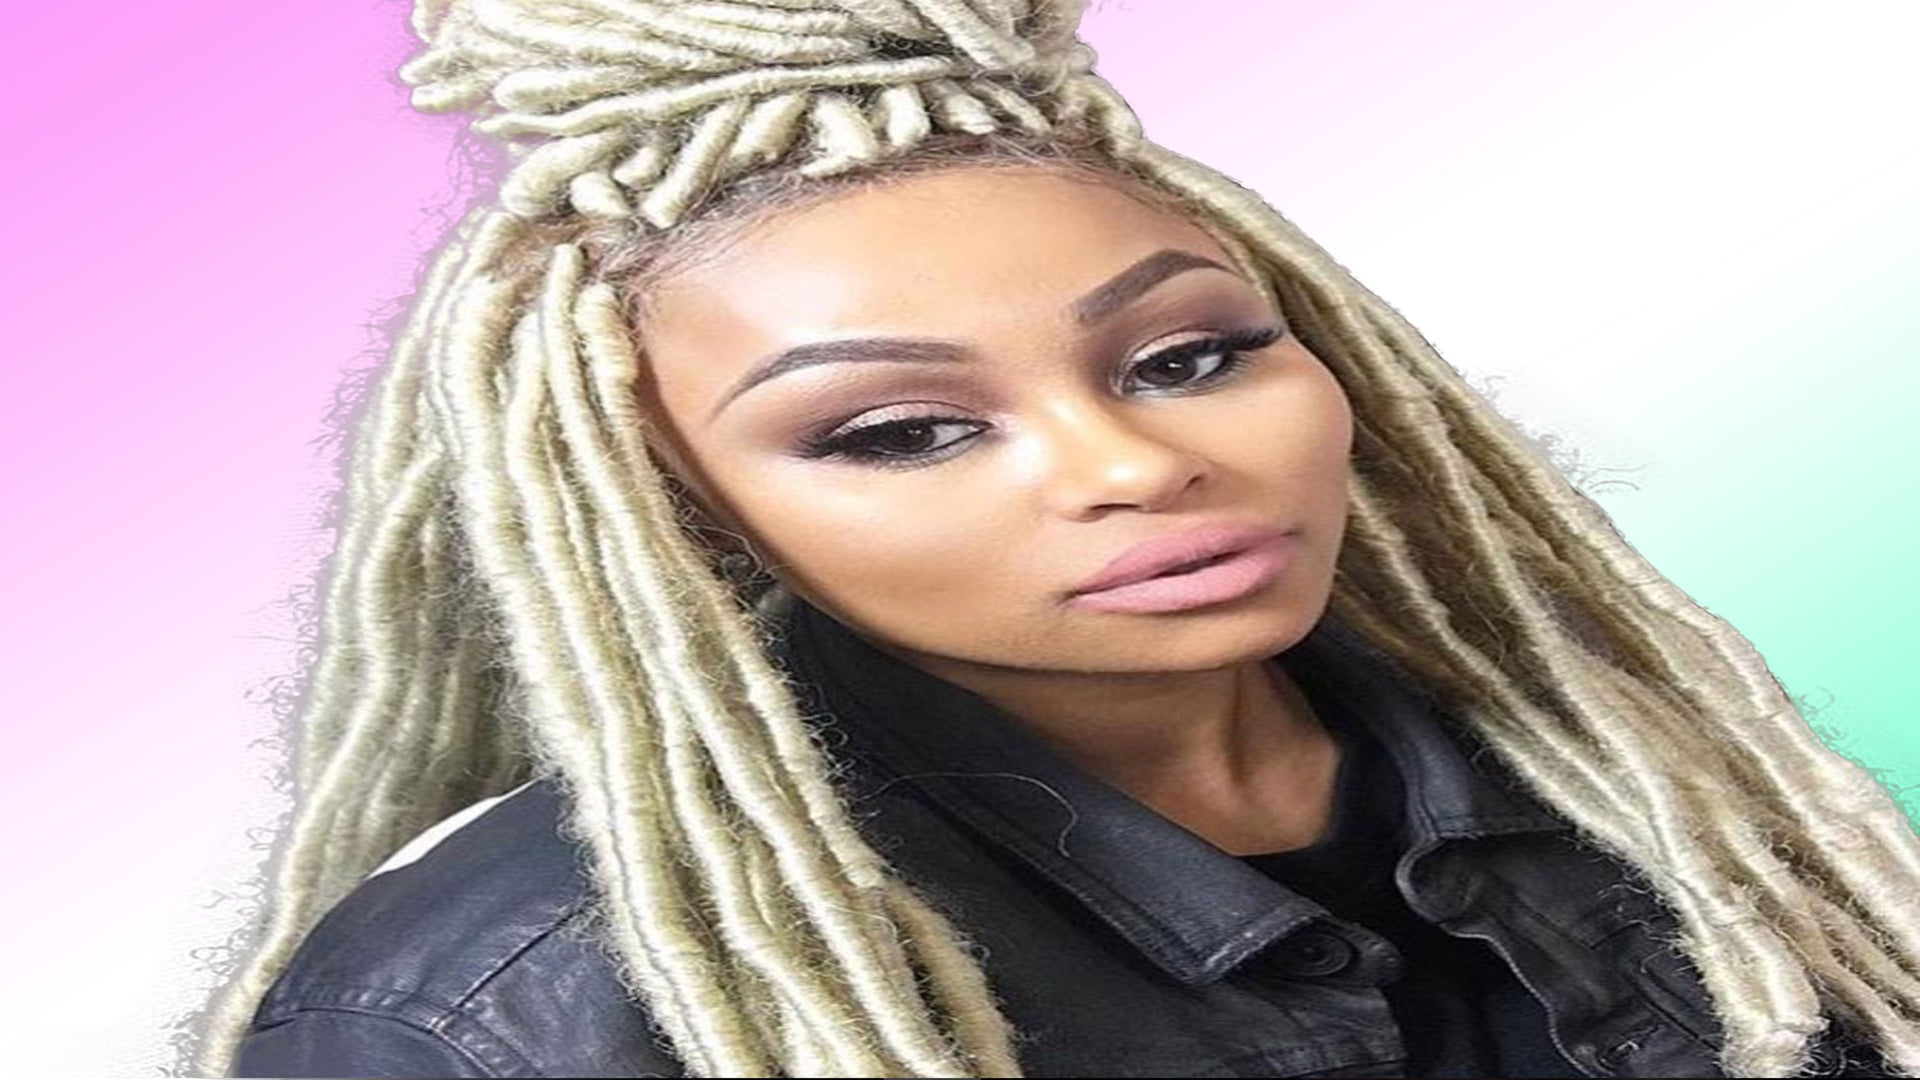 Blac Chyna Poses Nude 'in Celebration of Black History Month'